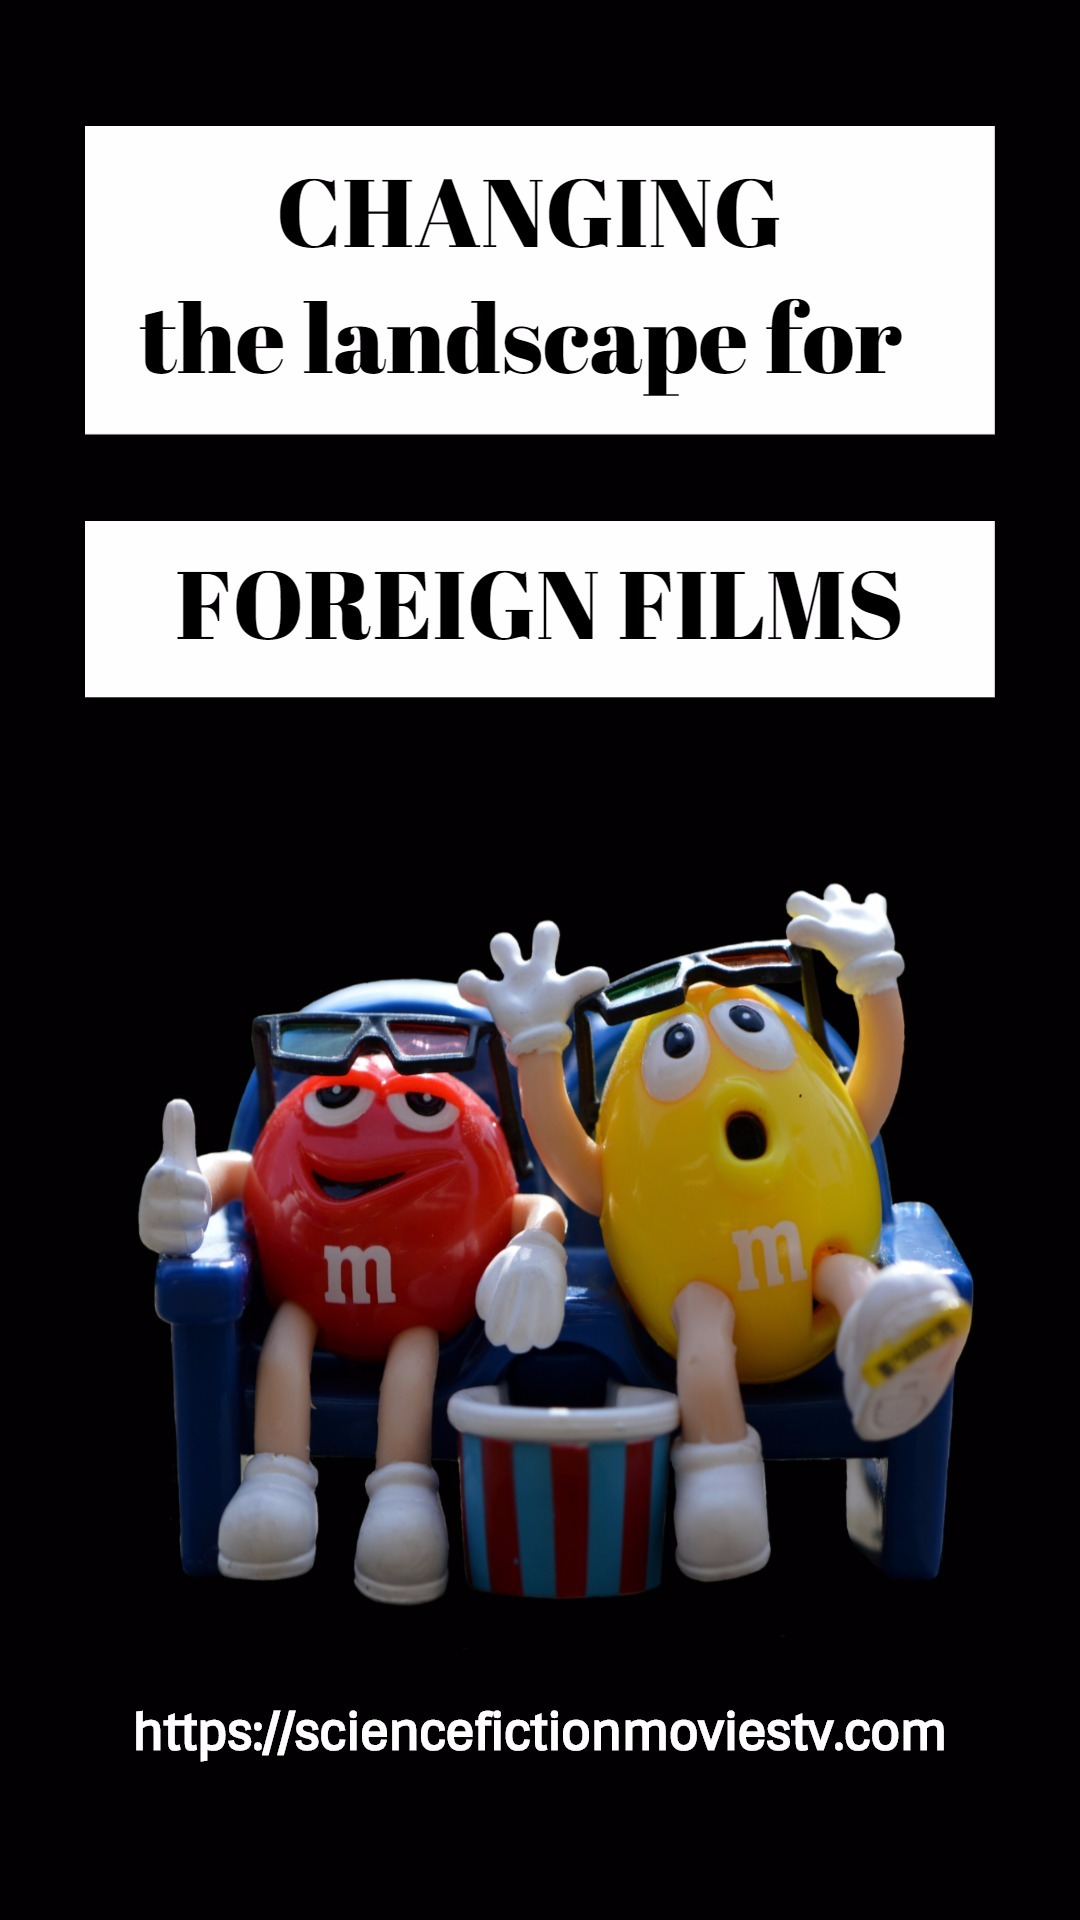 Changing the landscape for Foreign Films